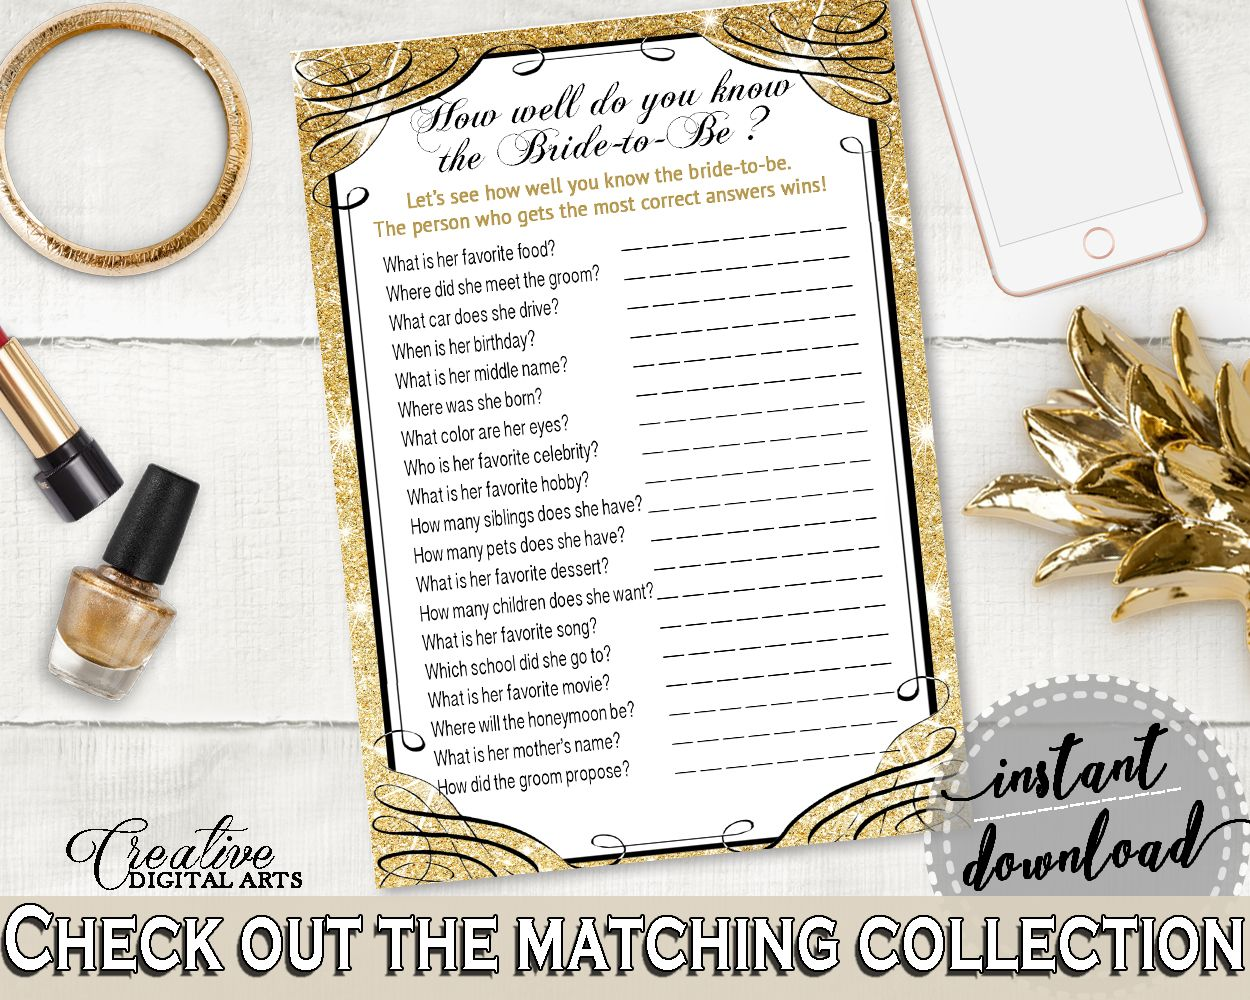 Glittering Gold Bridal Shower How Well Do You Know The Bride To Be in Gold And Yellow, conversance bride, party plan, party stuff - JTD7P #bridalshower #bride-to-be #bridetobe